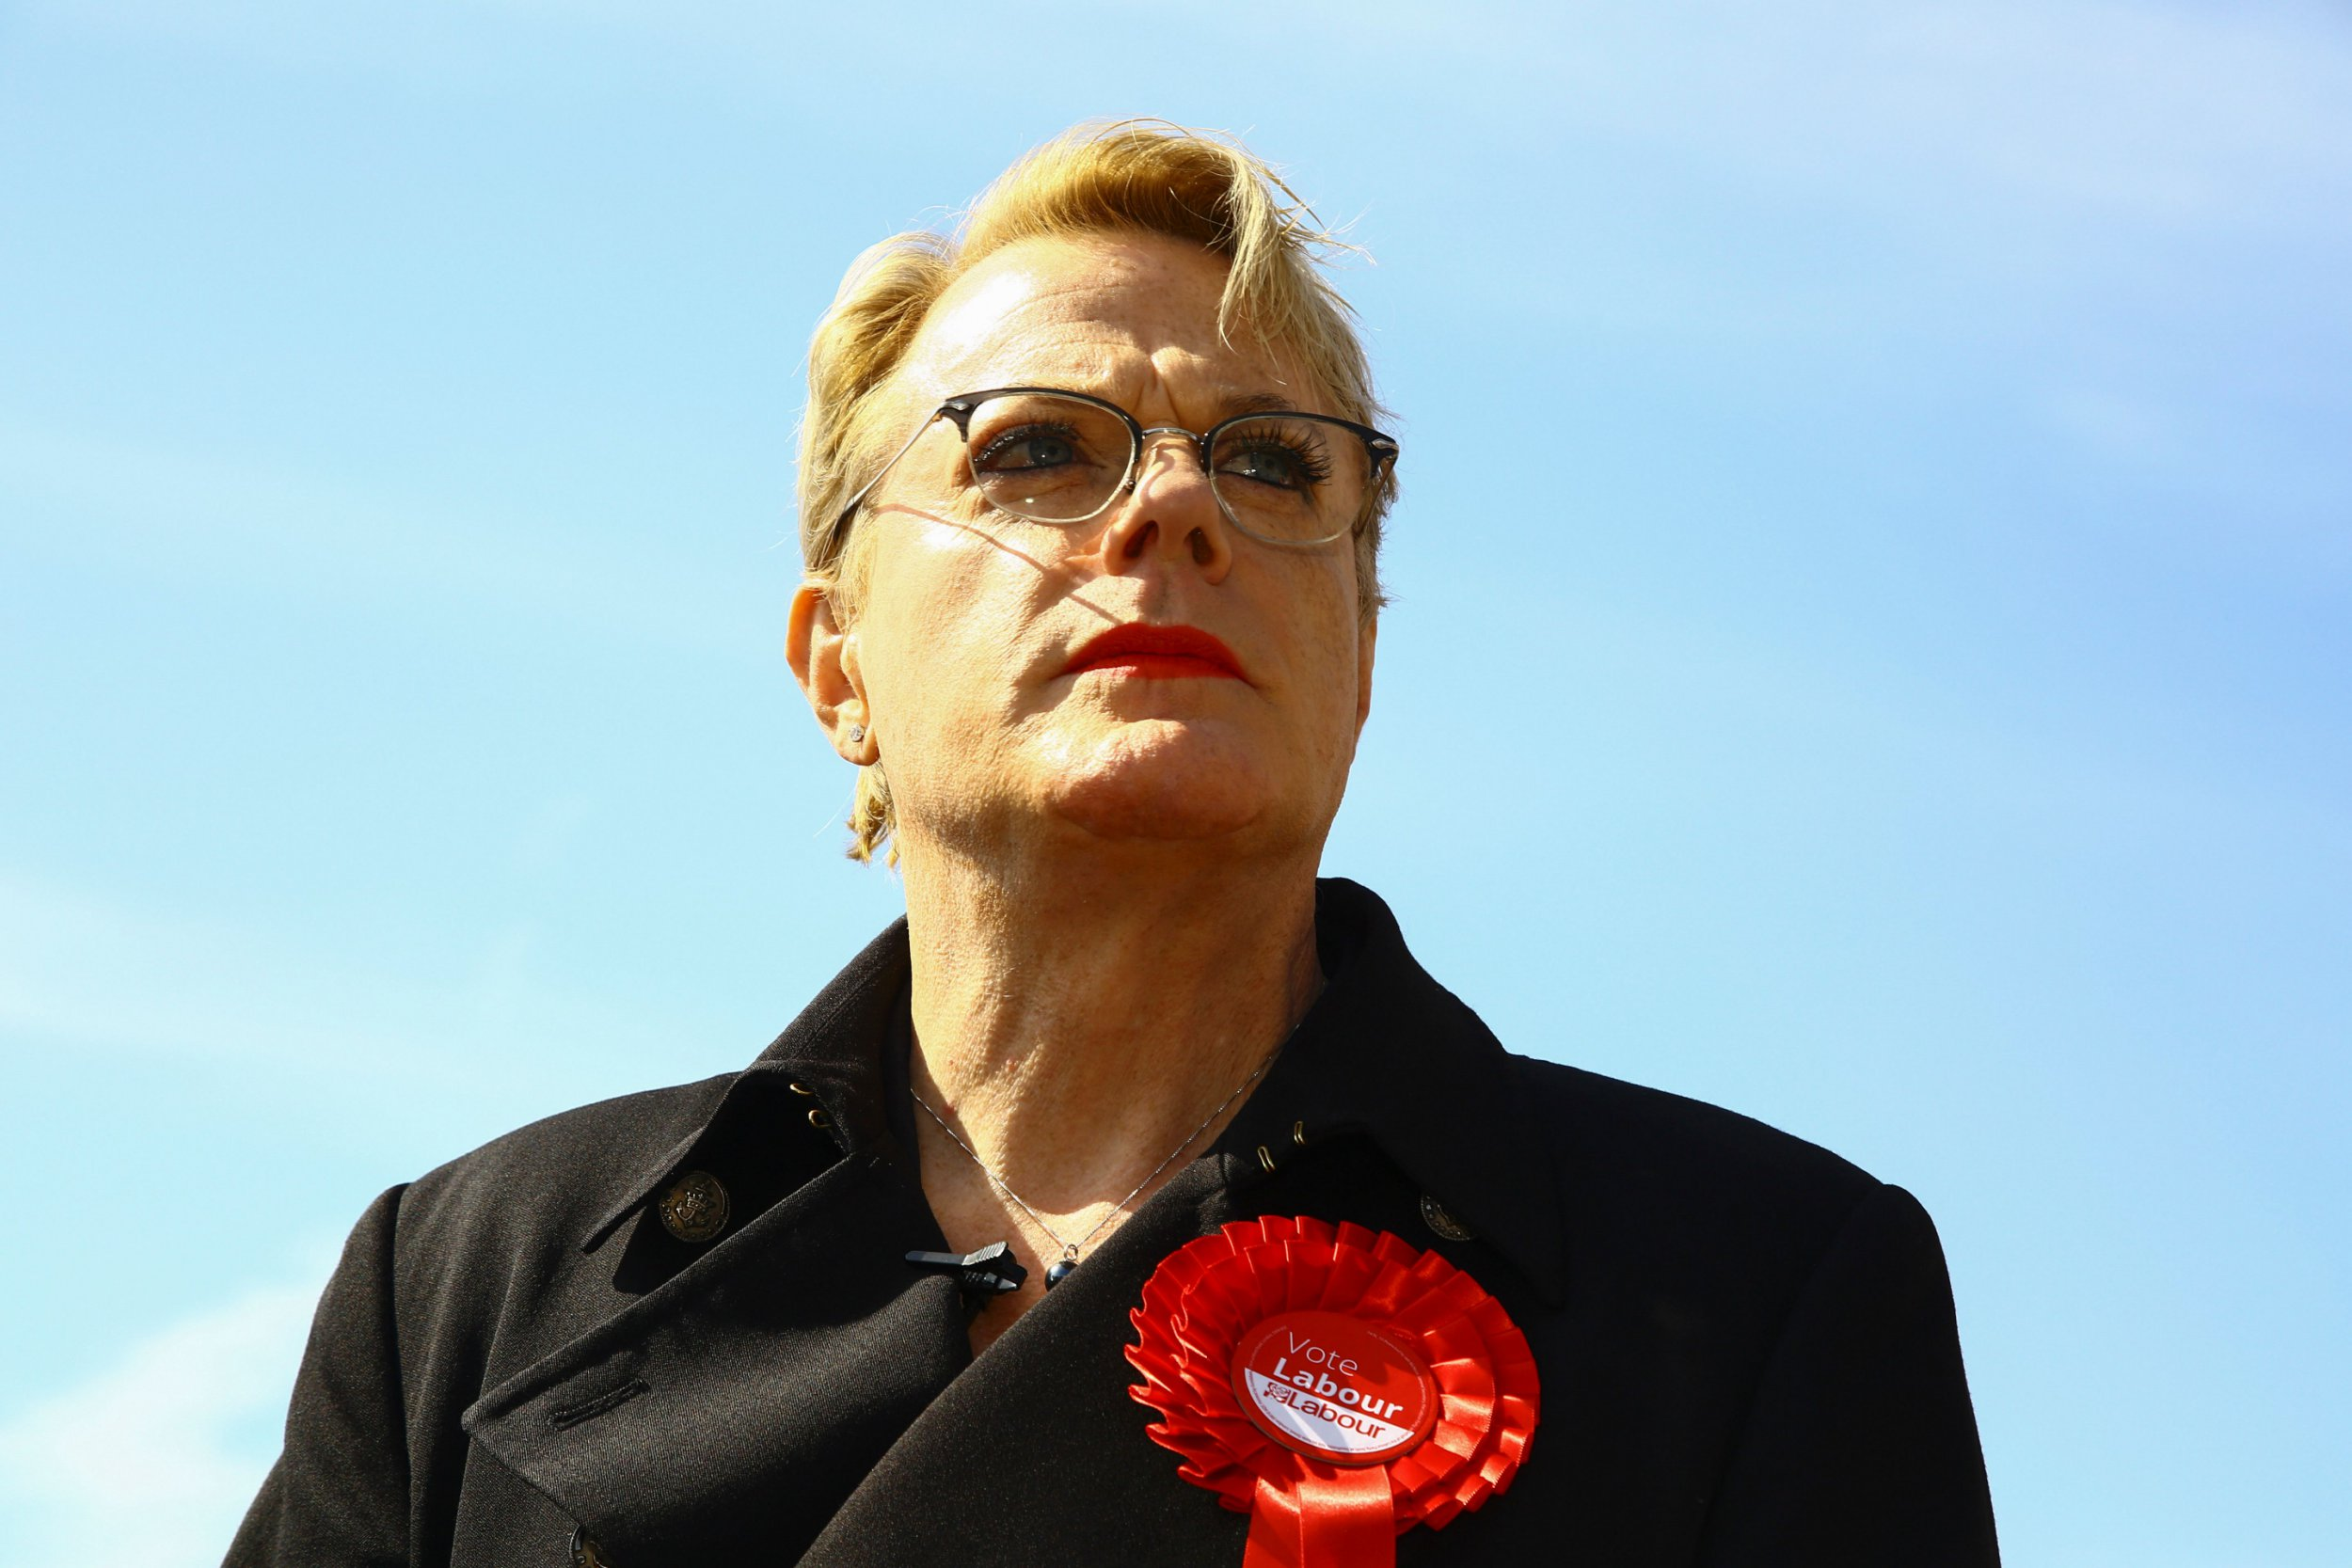 British actor and comedian Eddie Izzard poses for a photograph as he attends a Labour general election campaign event in Cardiff on May 10, 2017. Britain will vote in a general election on June 8. / AFP PHOTO / Geoff CADDICK (Photo credit should read GEOFF CADDICK/AFP/Getty Images)